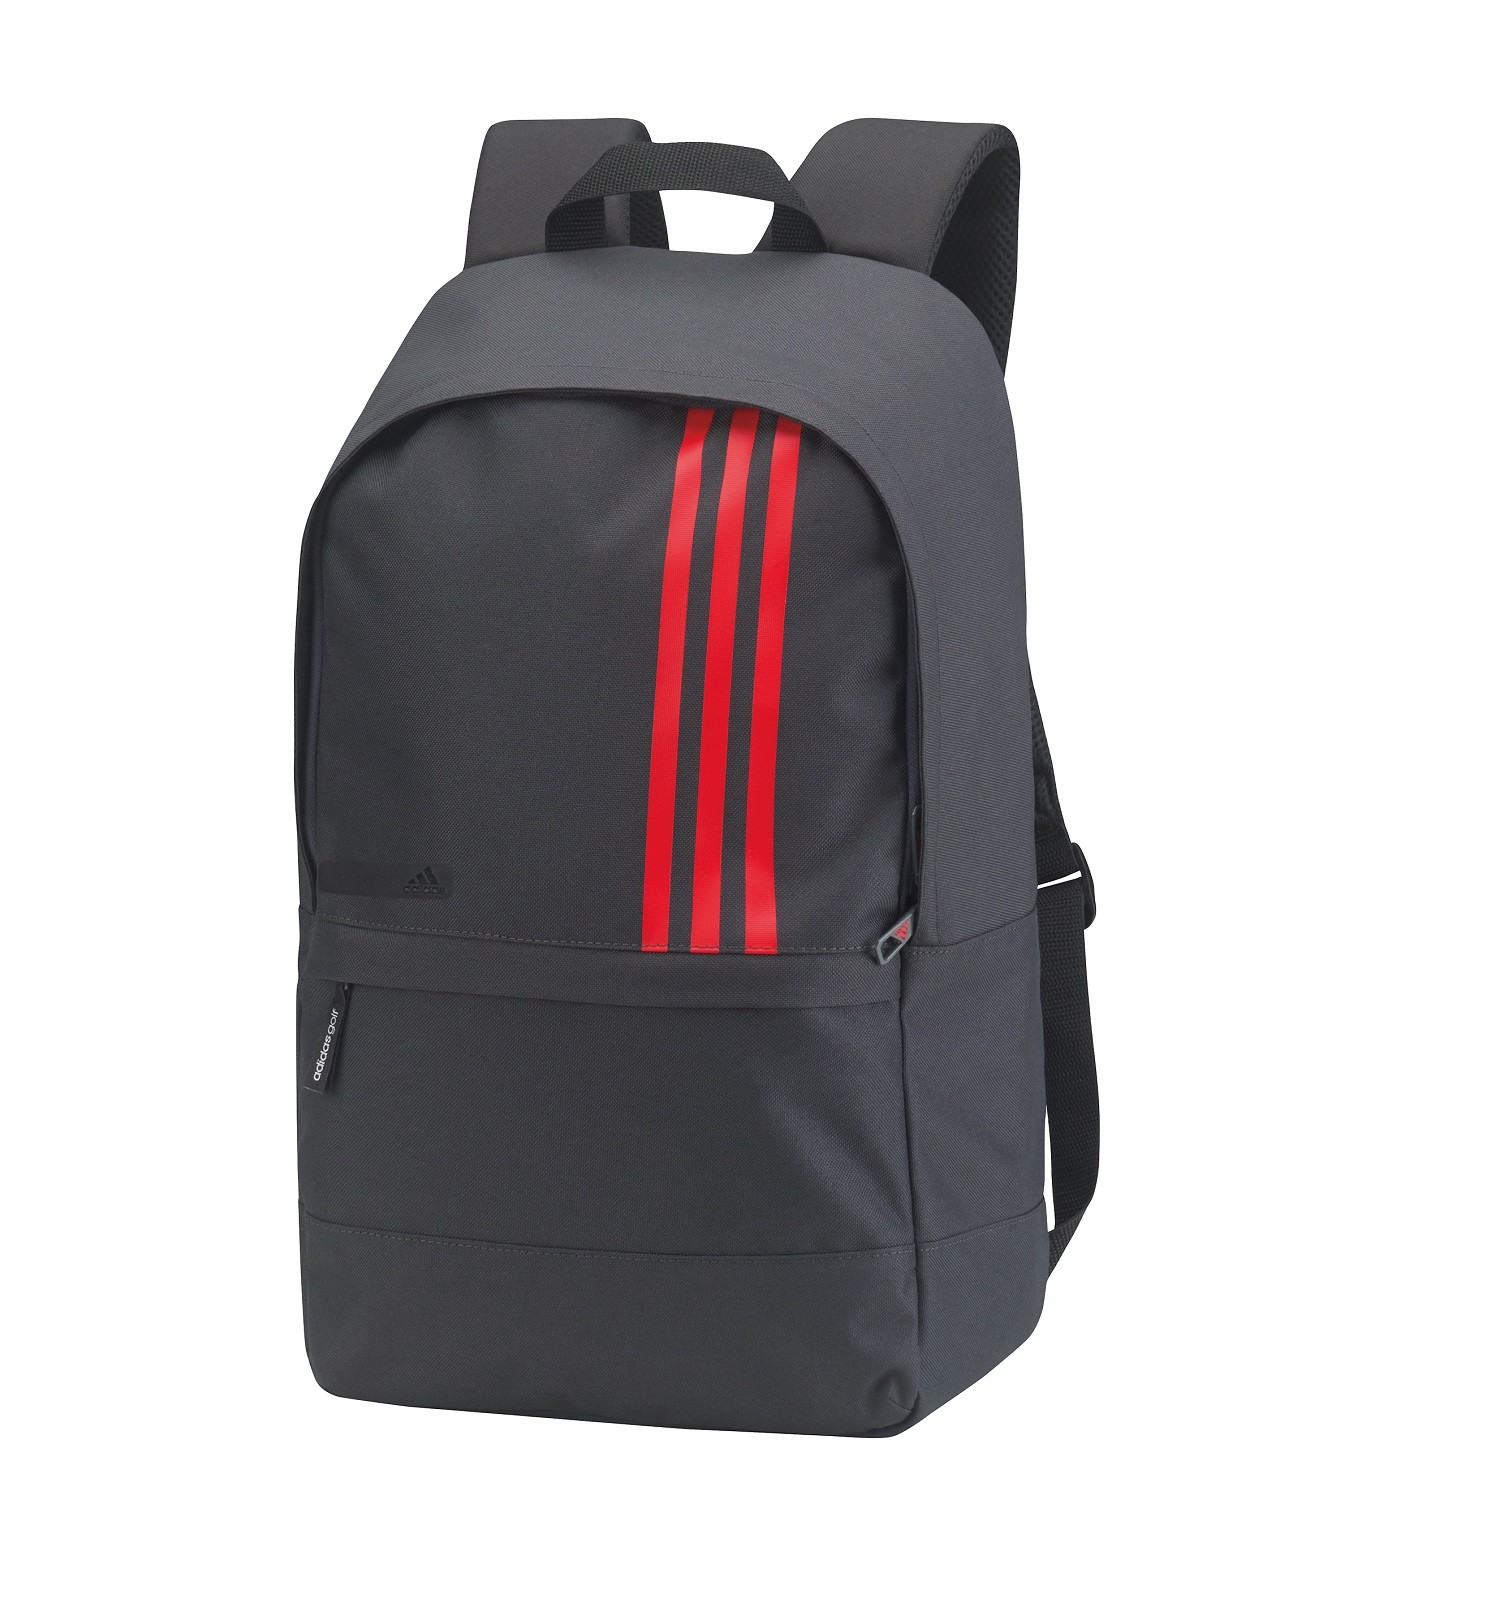 5d84de511616 Personalised Adidas 3-stripes Small Backpack (AD185)